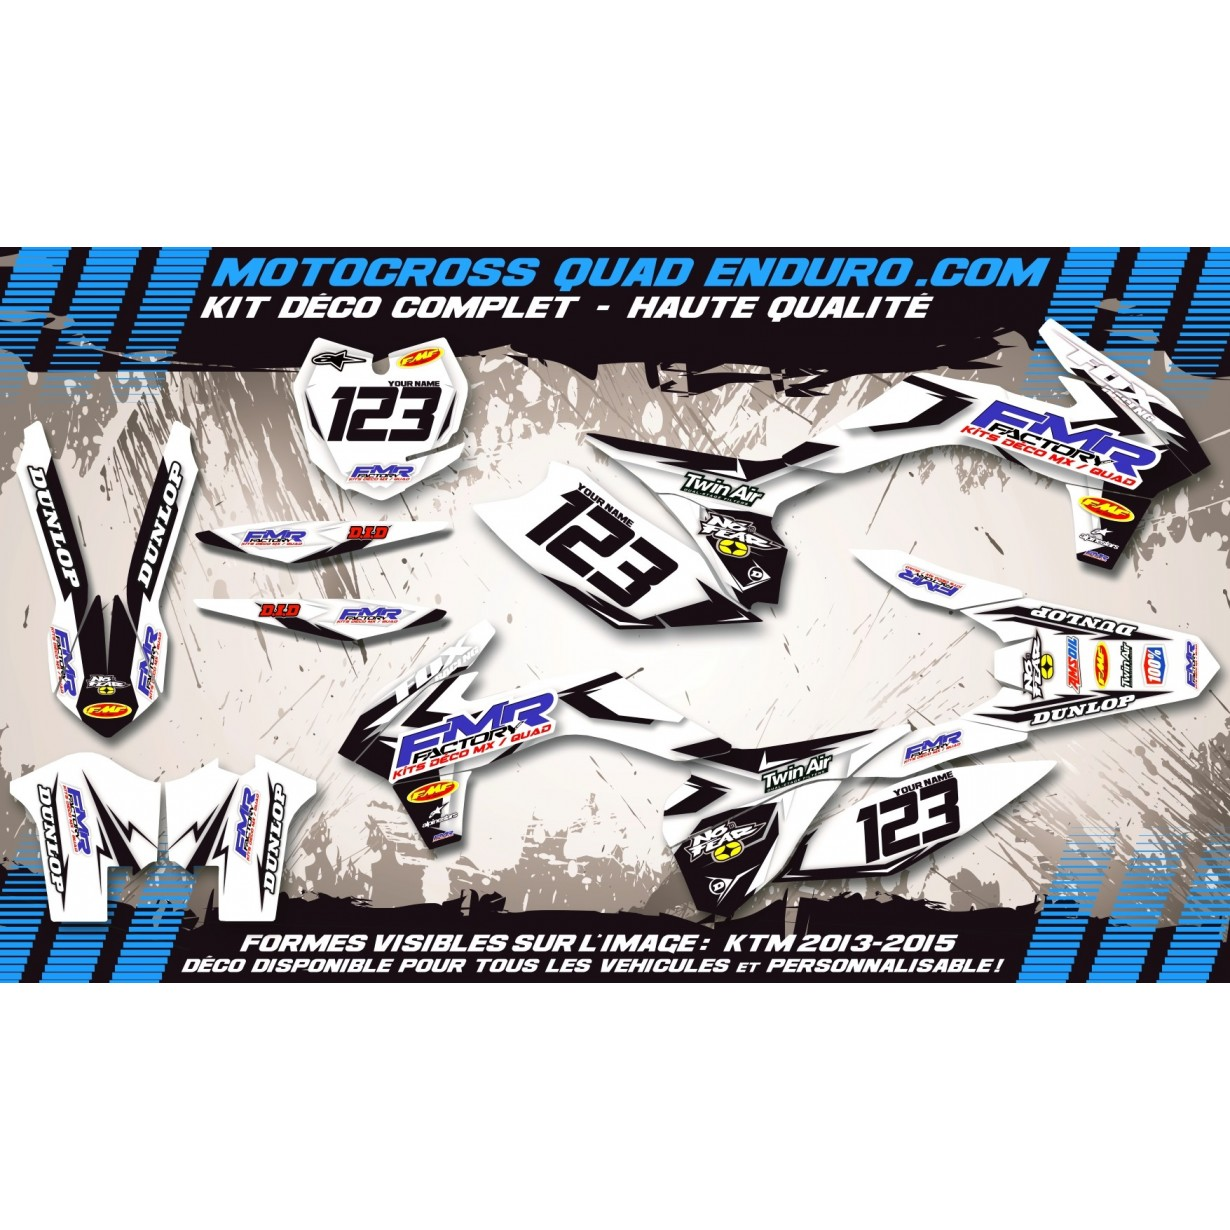 KIT DÉCO Perso 150 CRF 07-18 Fmr factory WT Edition MA13WT